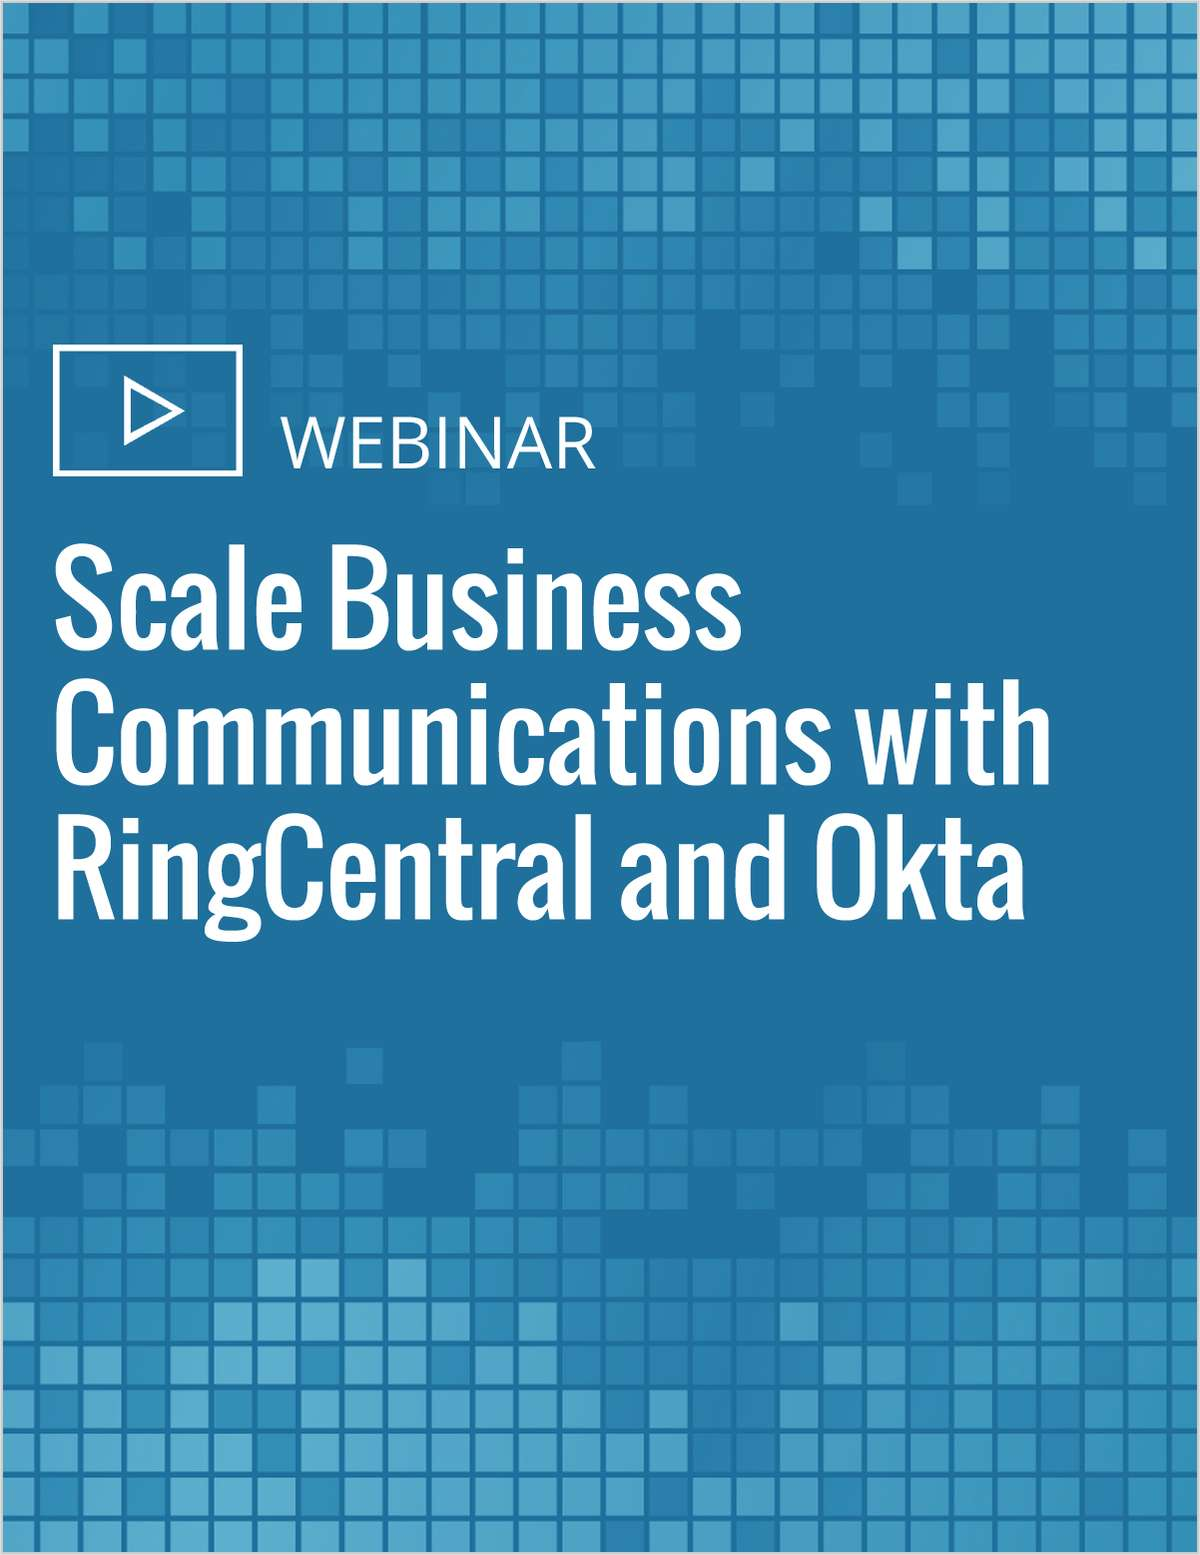 Scale Business Communications with RingCentral and Okta